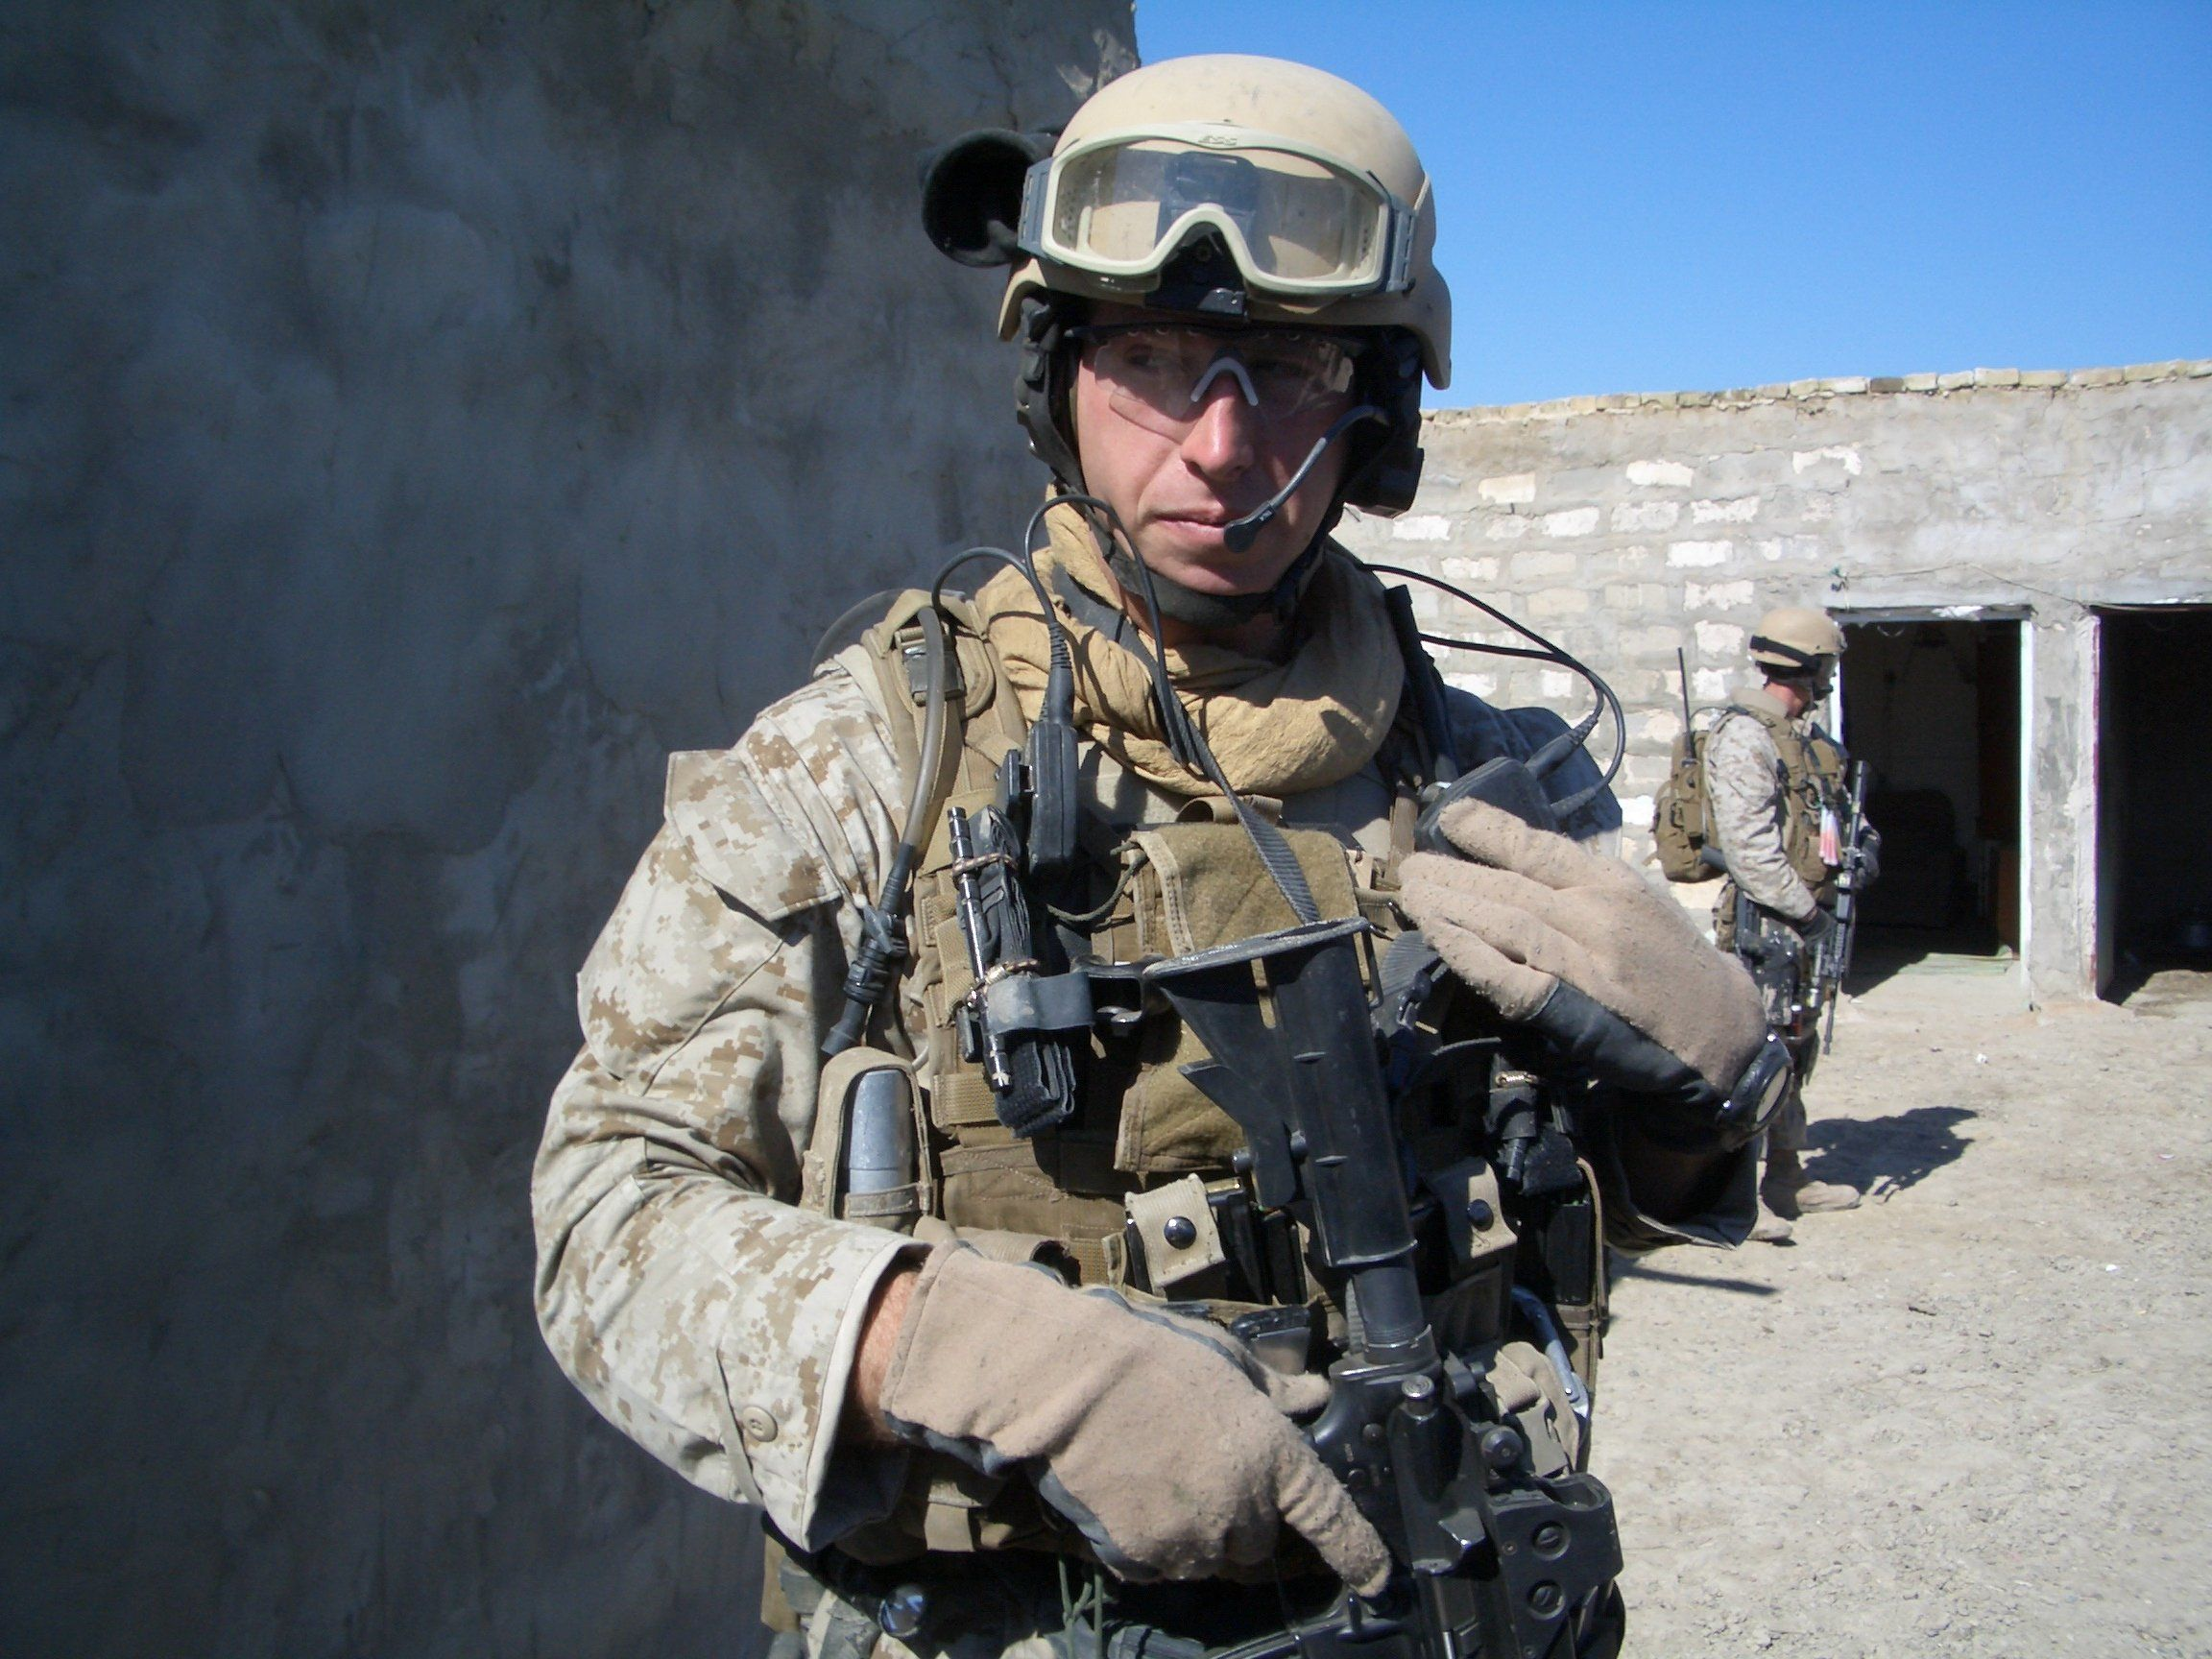 Jake Harriman began developing his ideas on what defeats extremists and what doesn't during four combat tours in Iraq an